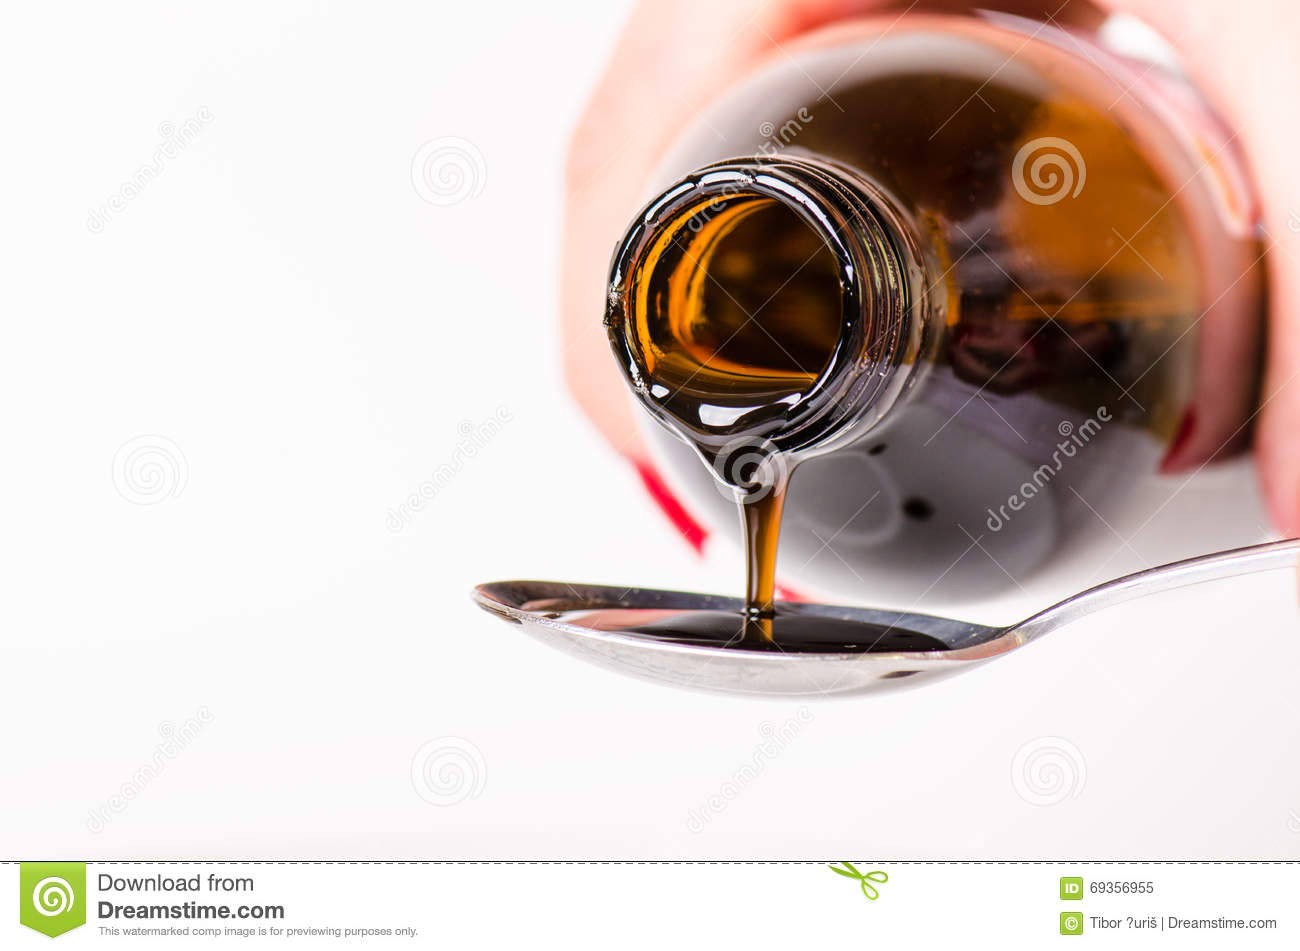 Download Bottle Pouring A Liquid On A Spoon. Isolated On A White Background. Pharmacy And Healthy Background. Medicine. Cough And Cold Drug Stock Image - Image of isolated, diet: 69356955